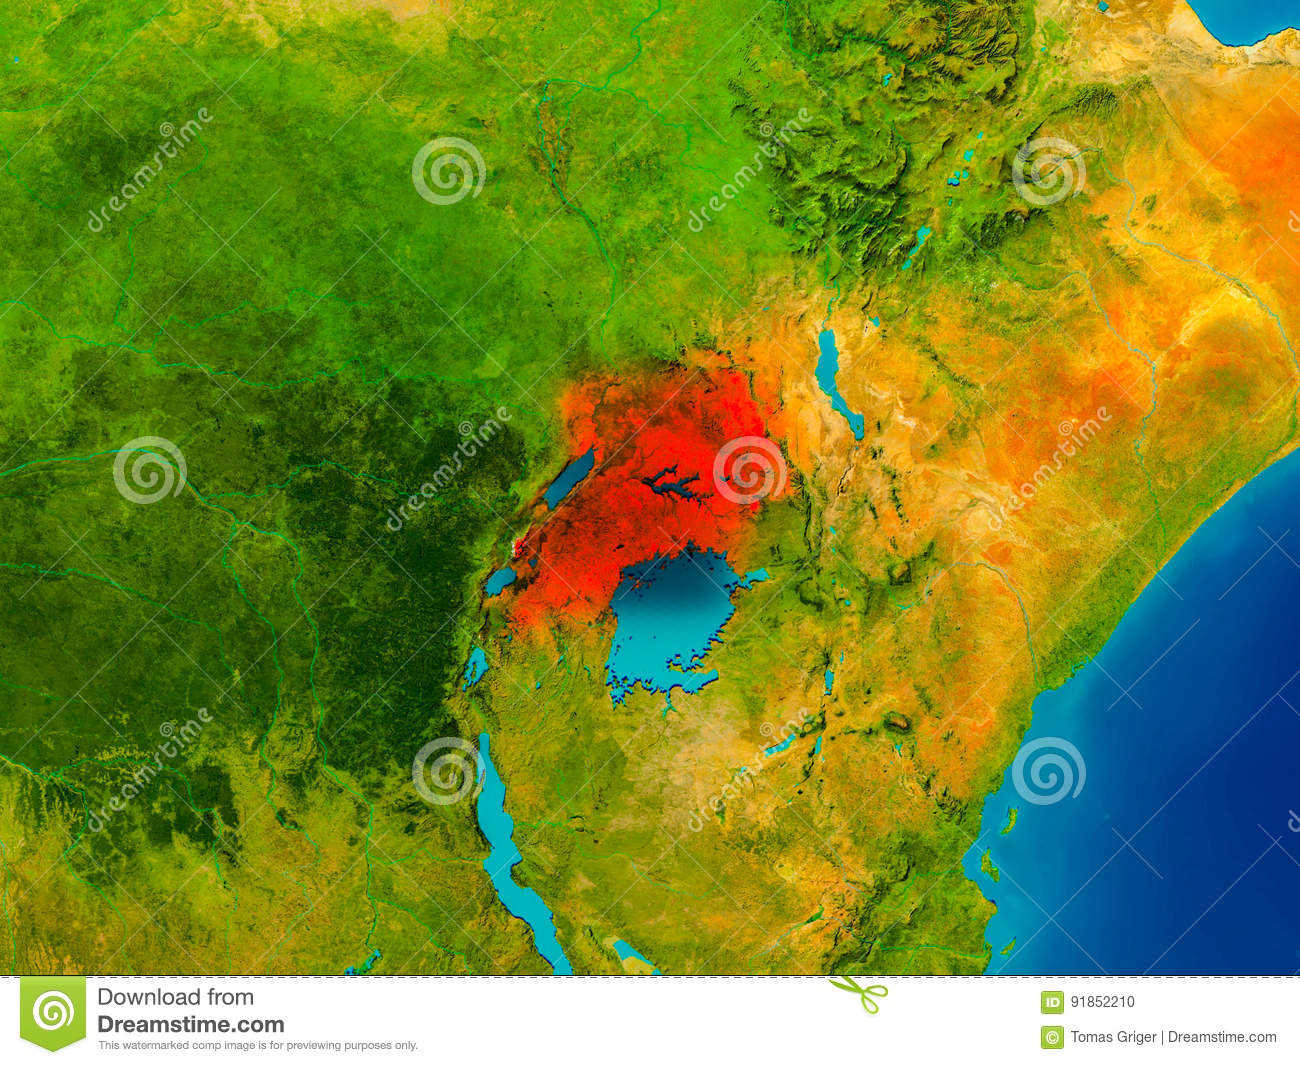 Uganda on physical map stock illustration Illustration of